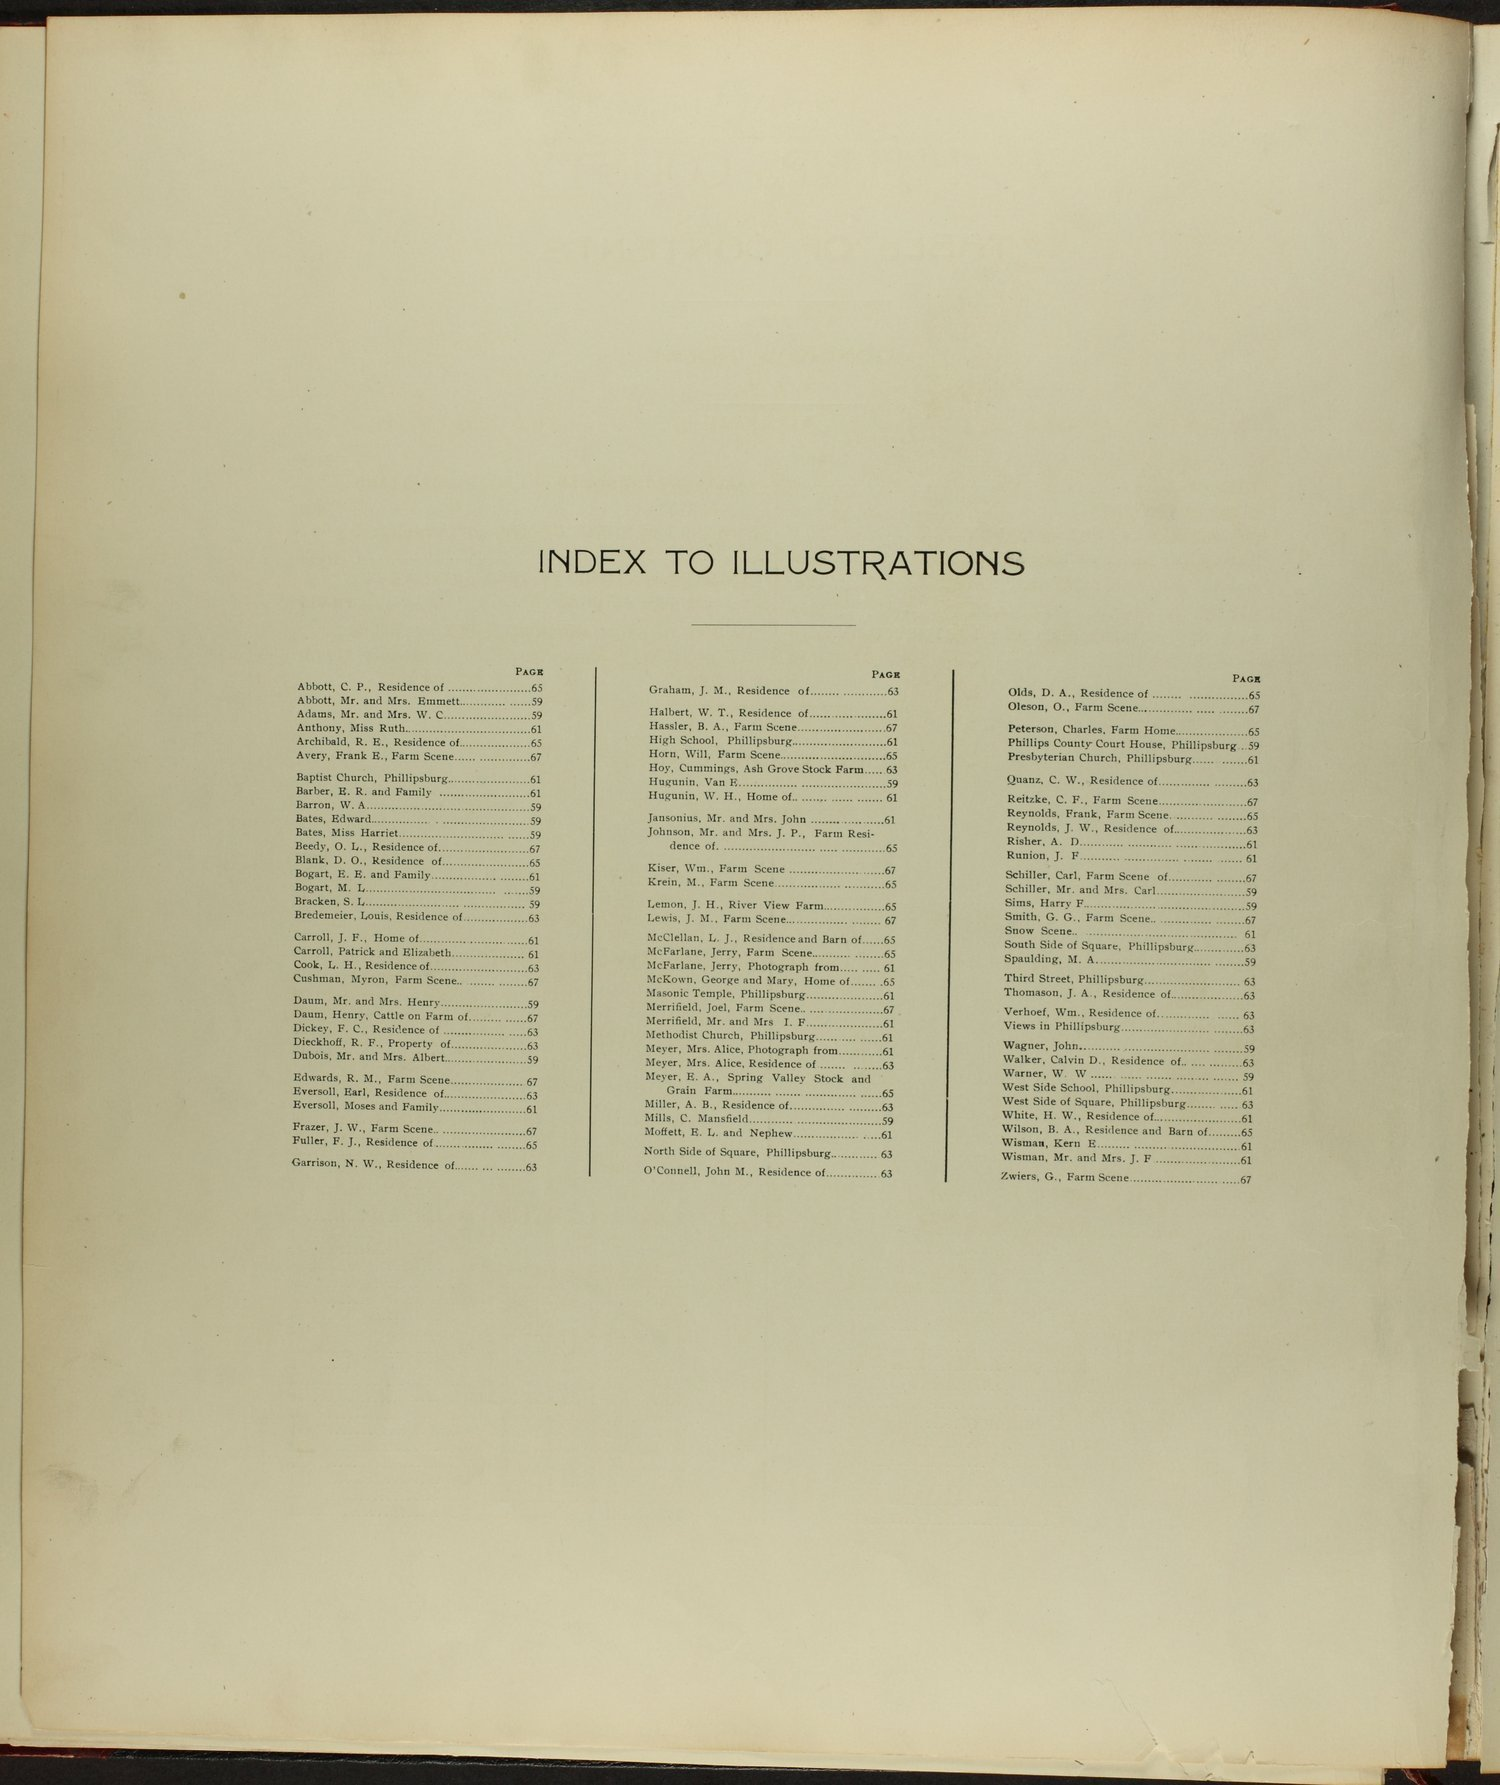 Standard atlas of Phillips County, Kansas - Index to Illustrations